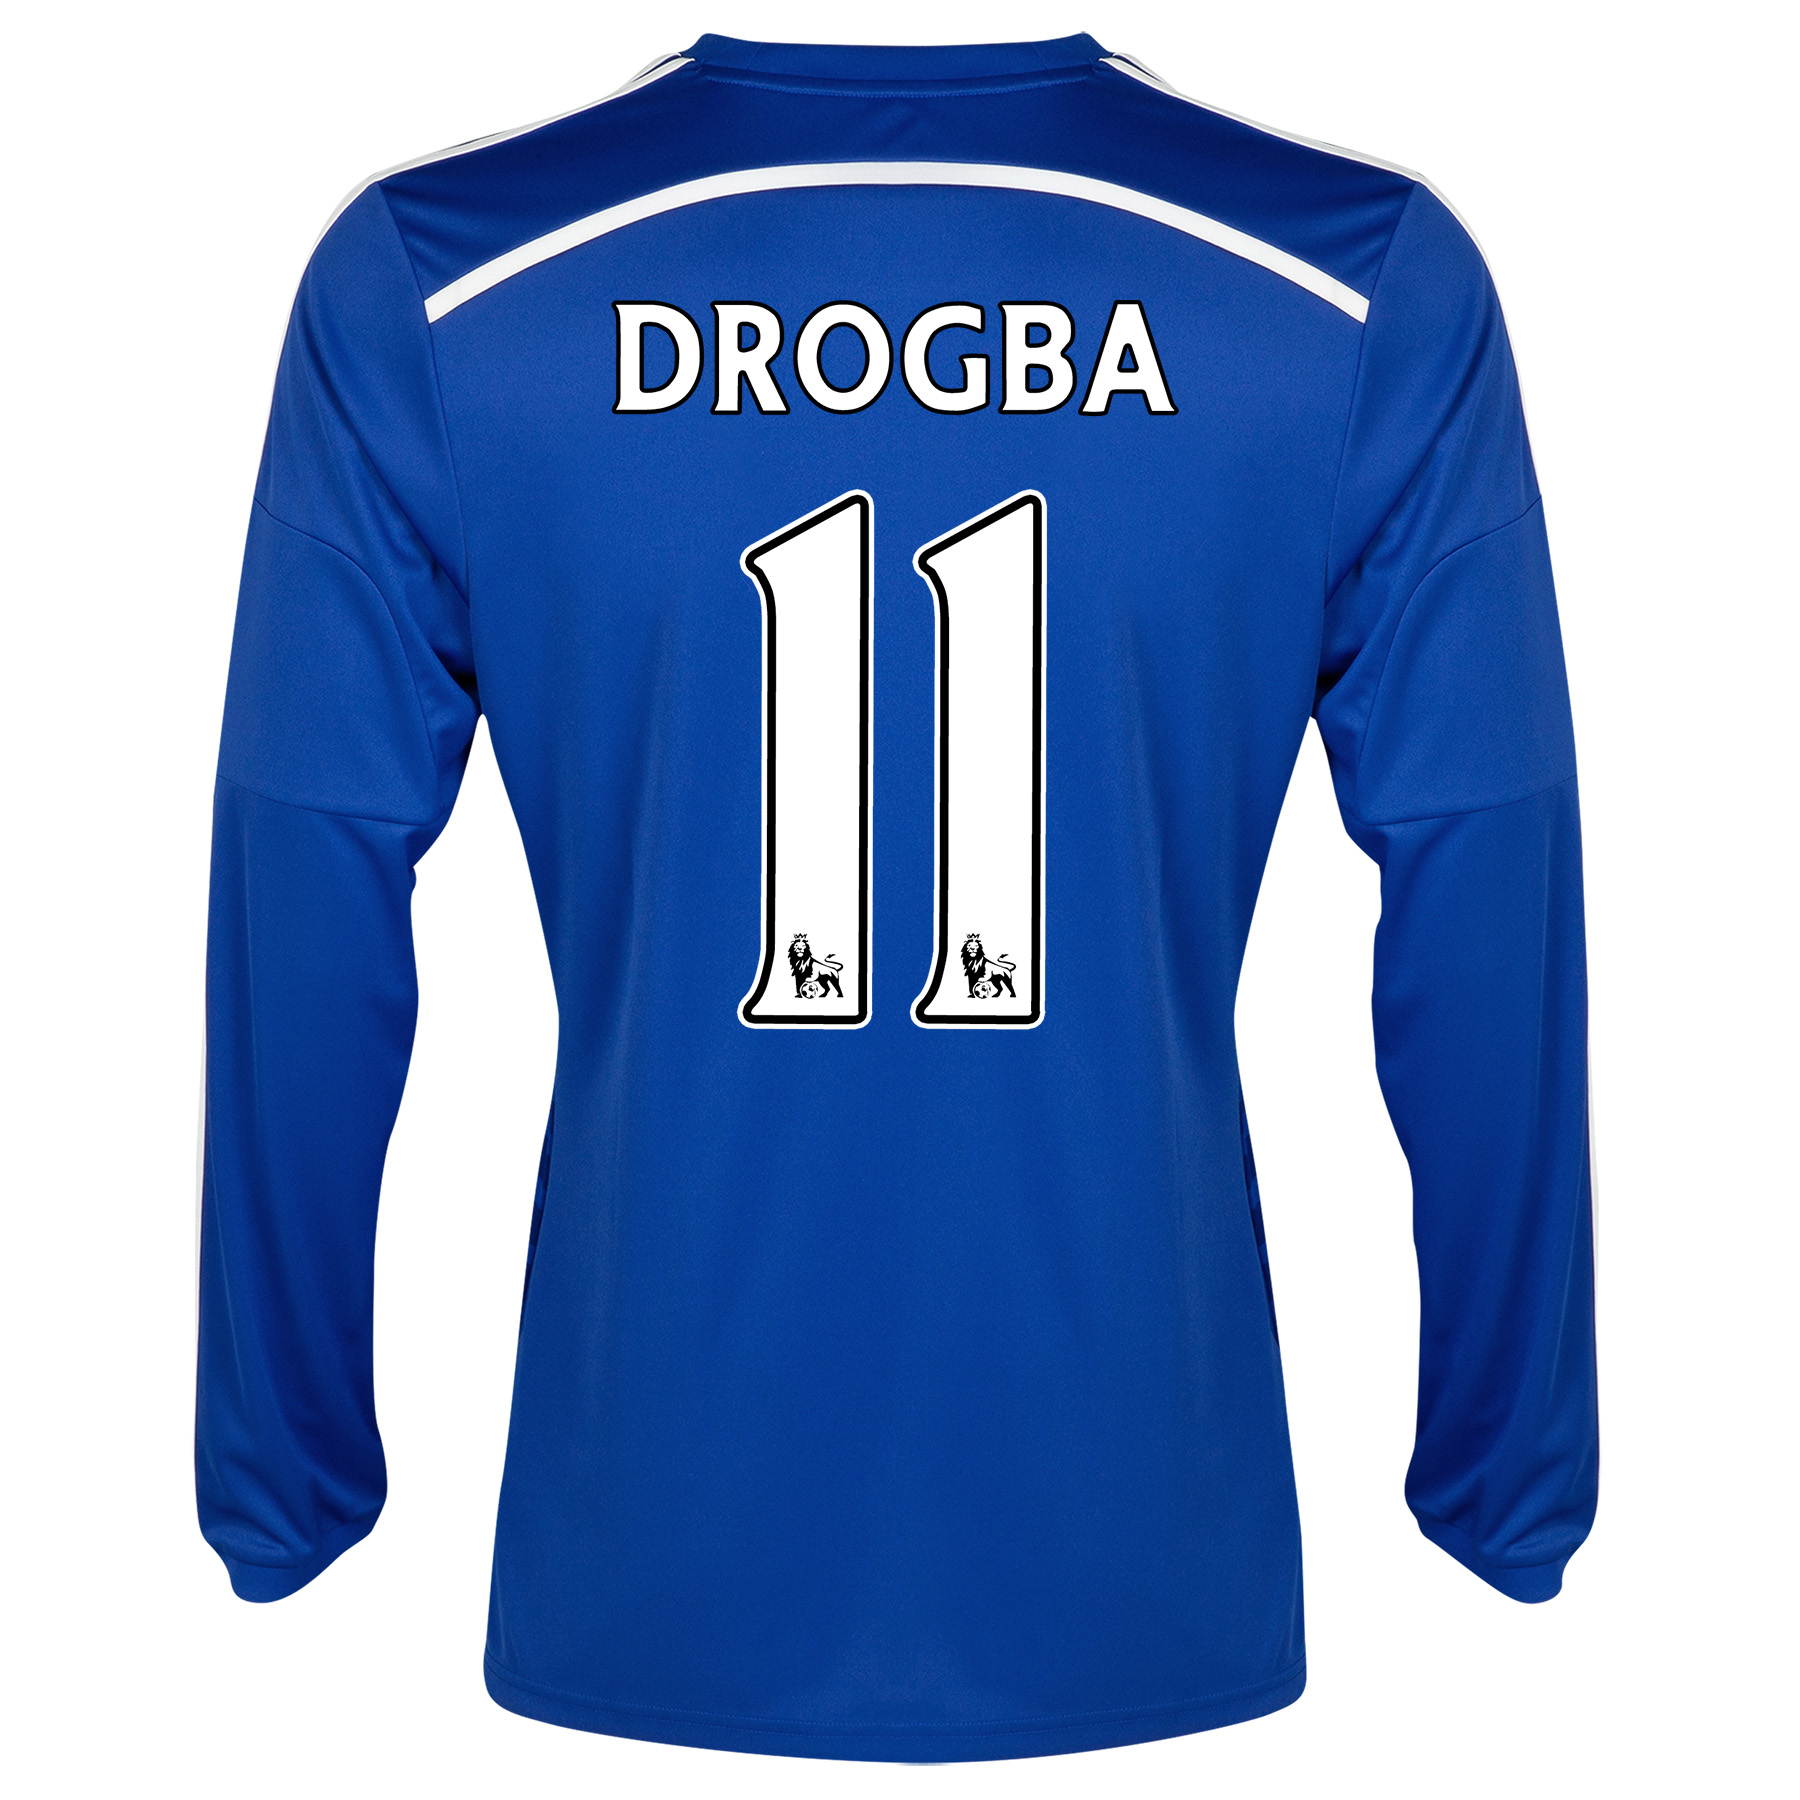 Chelsea Home Shirt 2014/15 - Long Sleeve - Kids with Drogba 15 printing